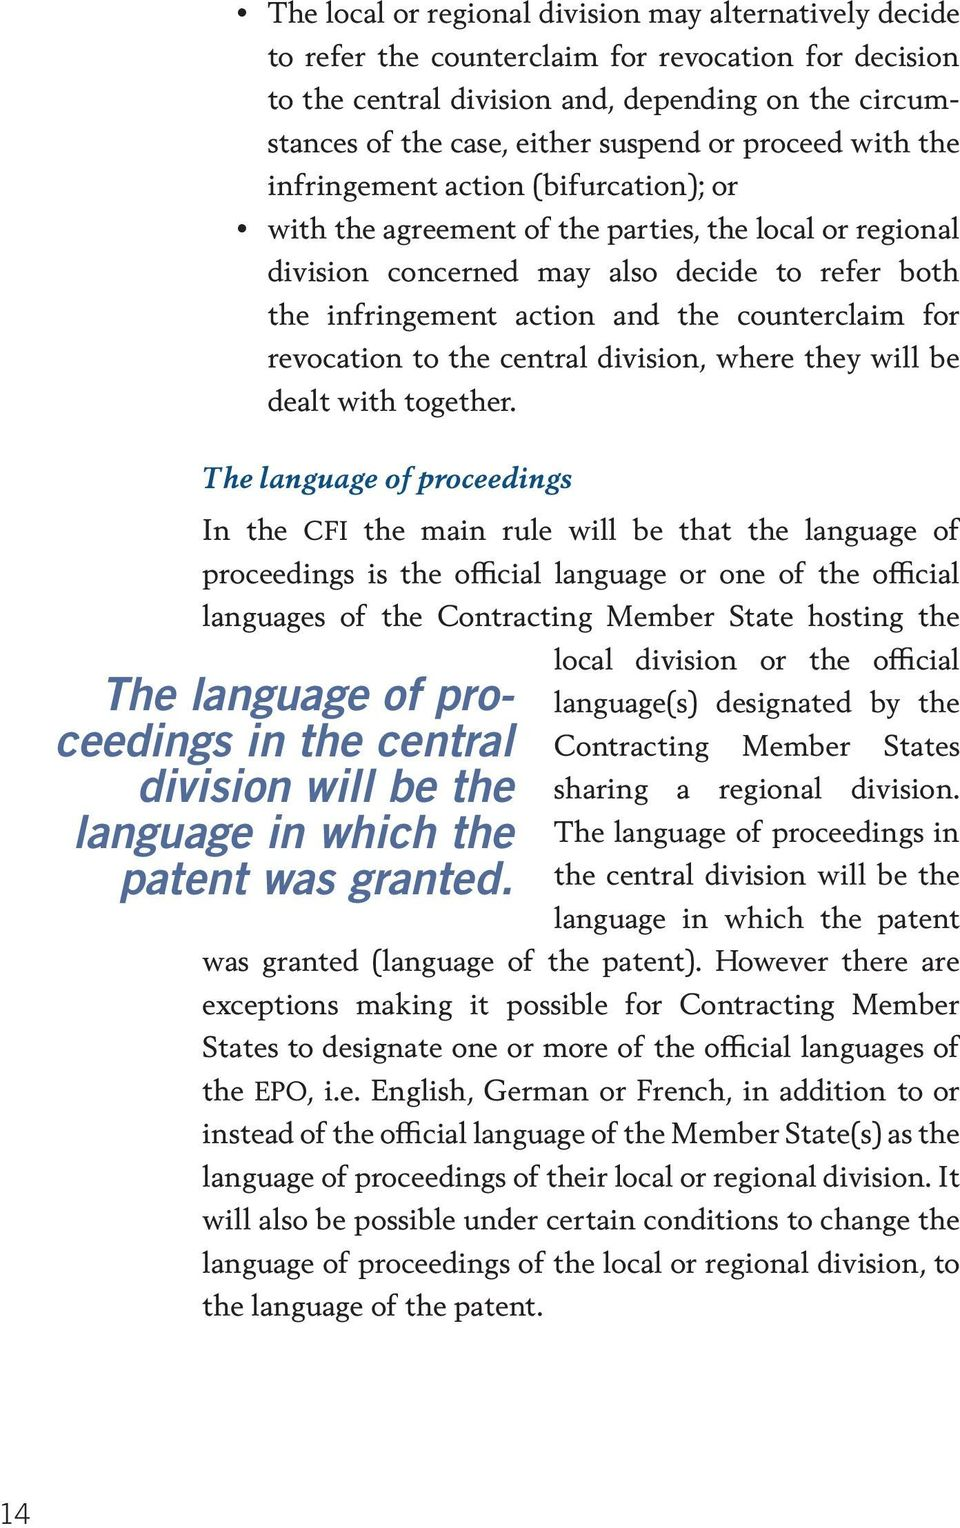 counterclaim for revocation to the central division, where they will be dealt with together.